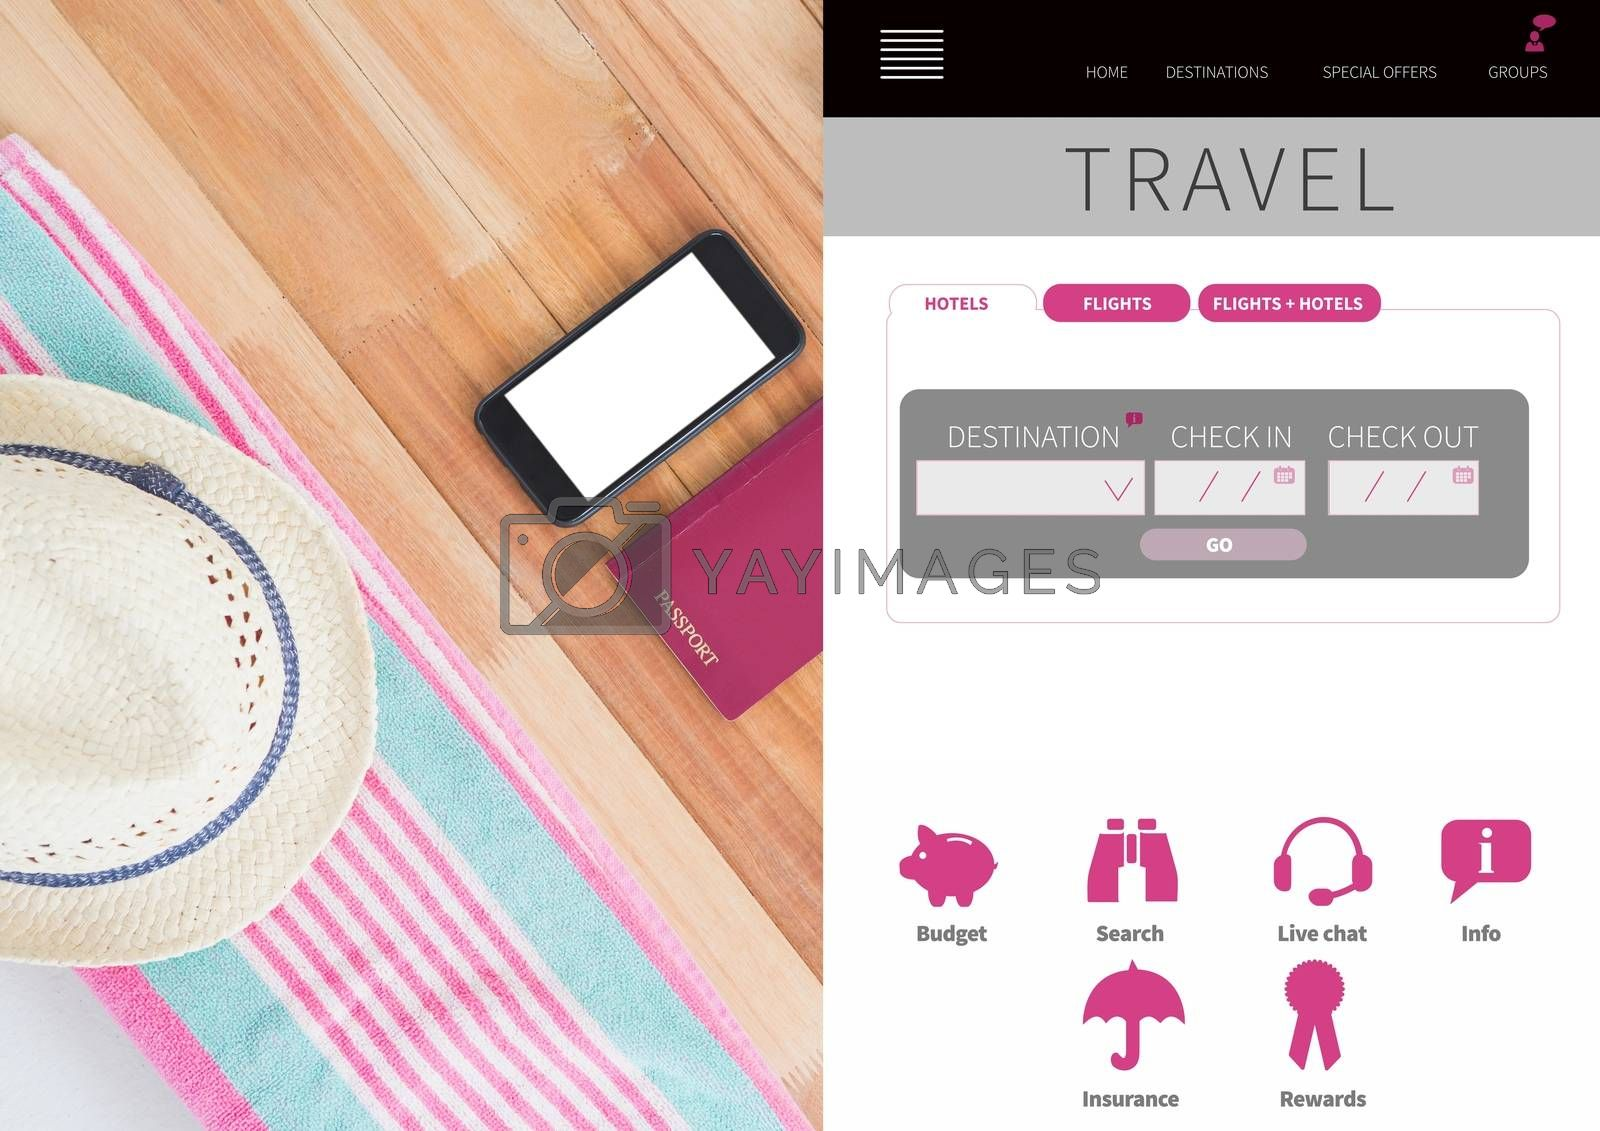 Digital composite of Travel Holiday break App Interface